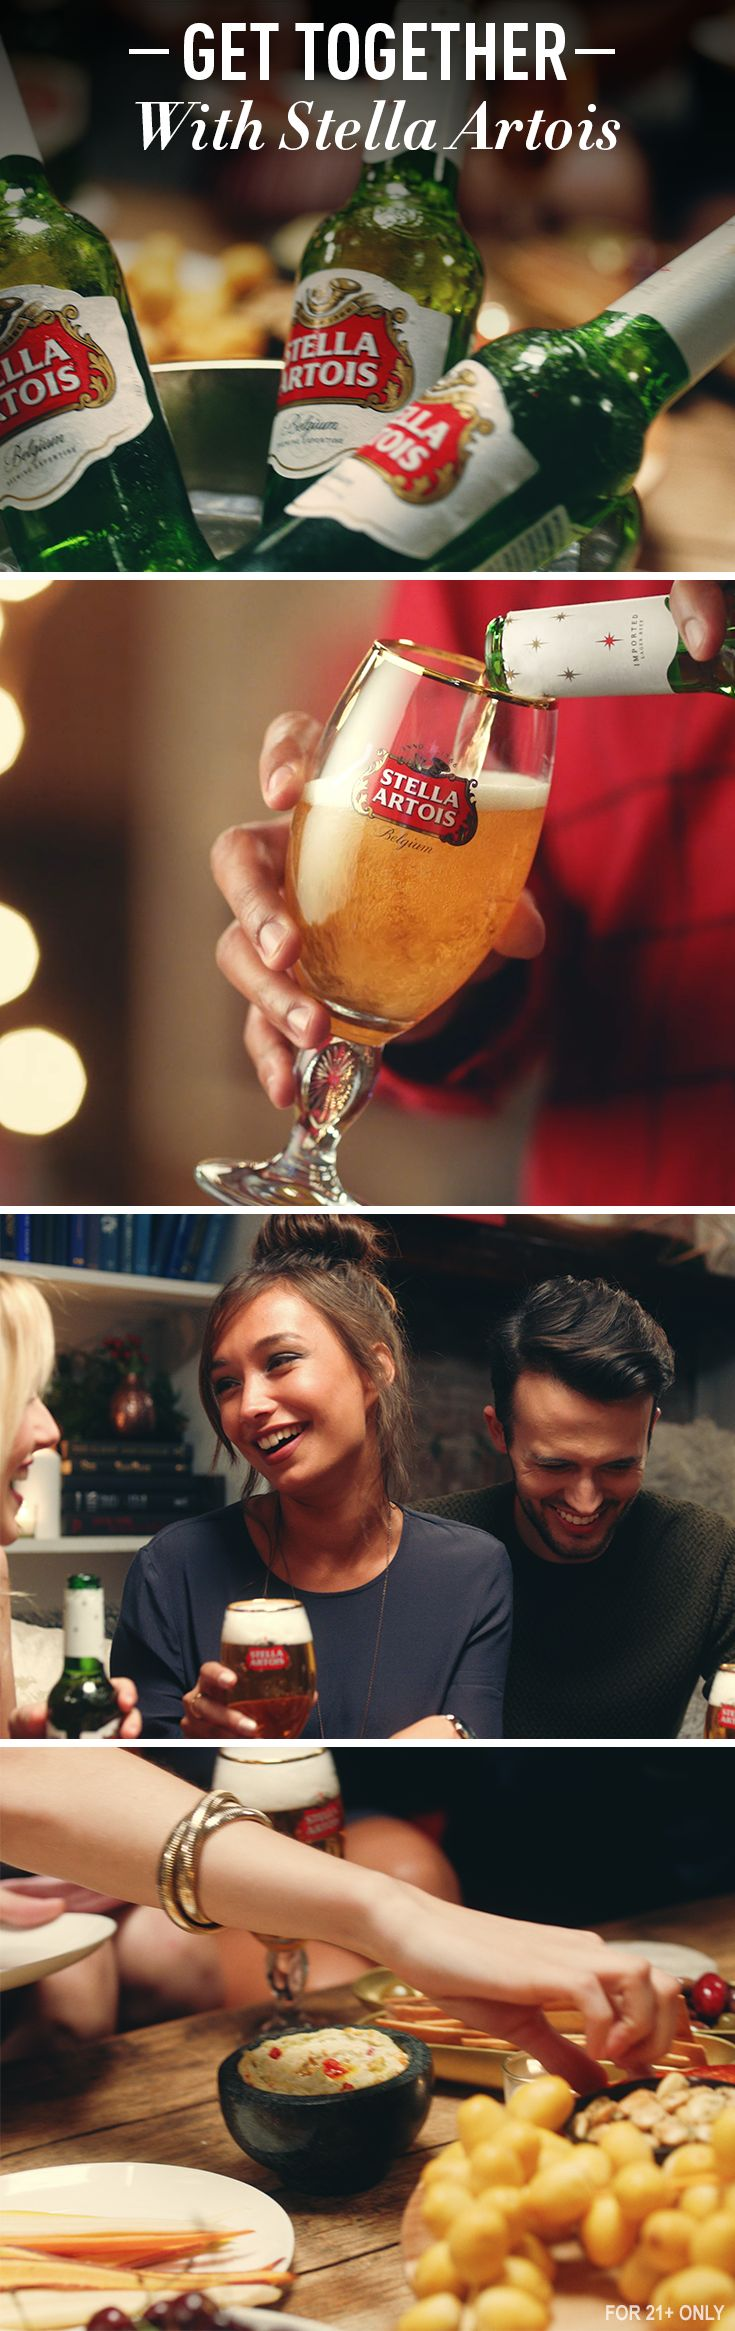 Stella Artois is brewed for all holiday celebrations. Our universally loved crisp taste and sophisticated Chalice are the perfect partners to help party guests get to know one another over casual bites.